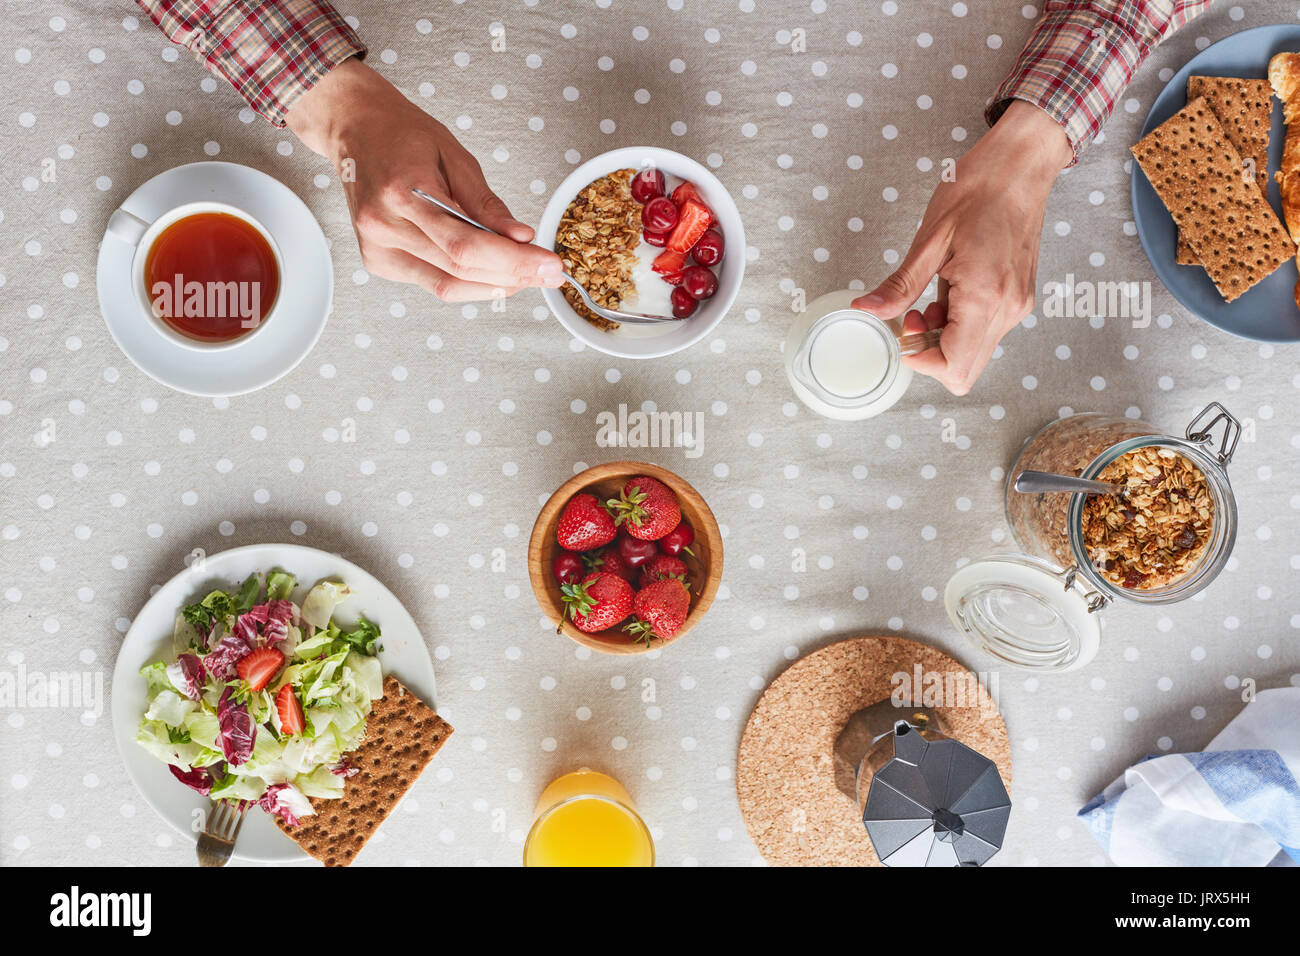 Healthy eating - Stock Image